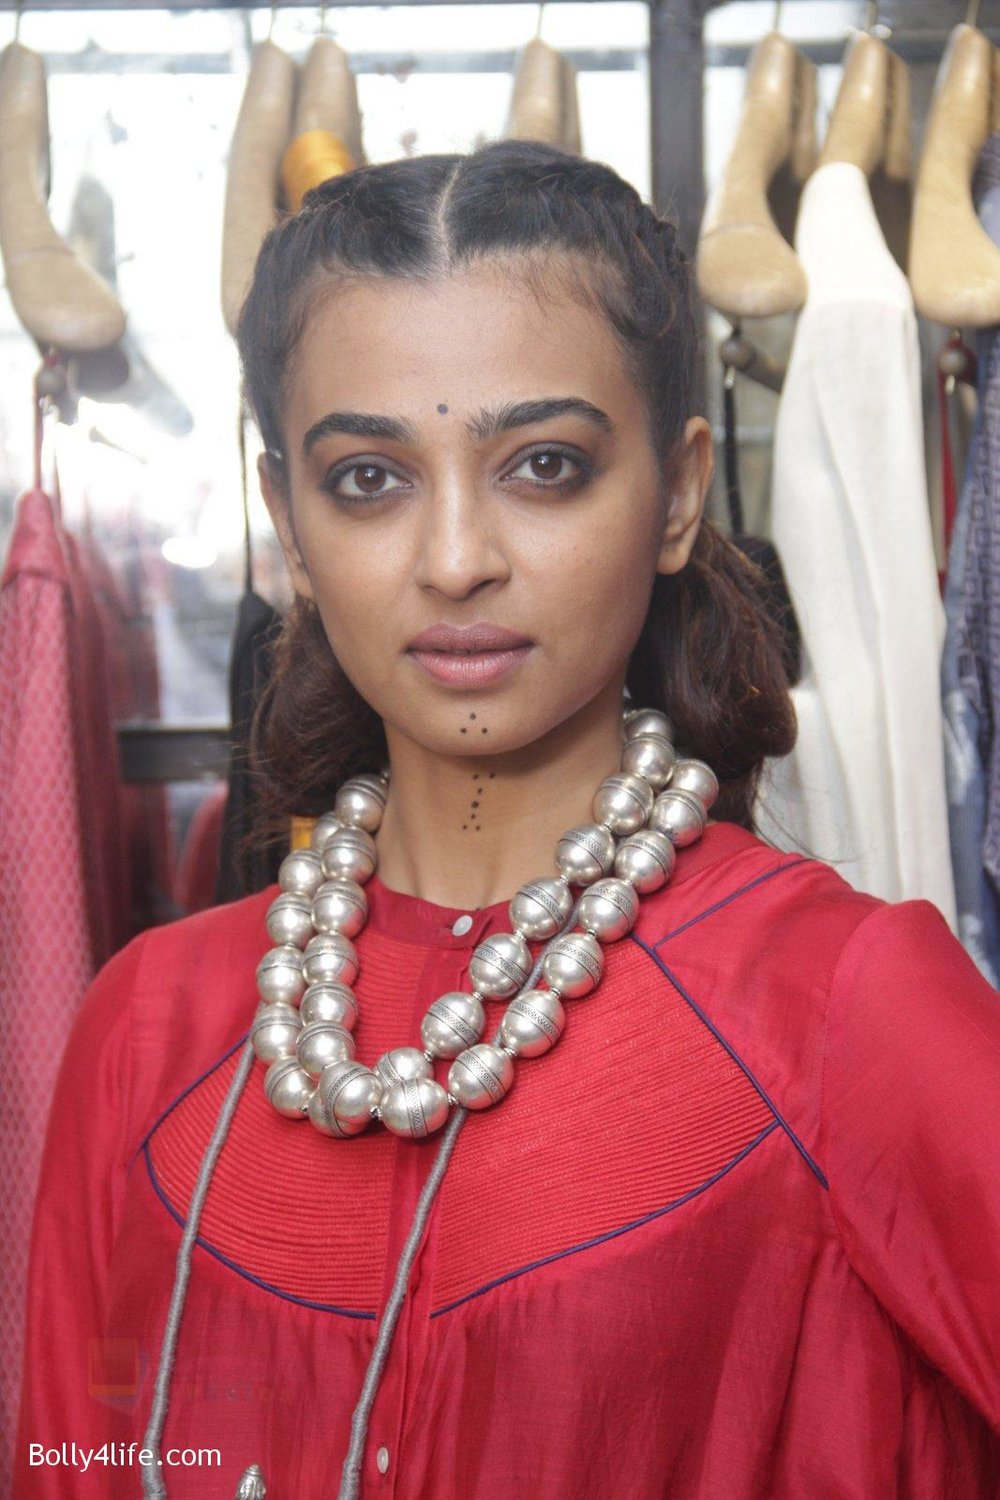 Radhika-Apte-unveil-Festive-Edit-of-new-Luxury-Pret-label-AMOH-by-Designers-Monica-Karishma-of-JADE-on-26th-Sept-2016-23.jpg